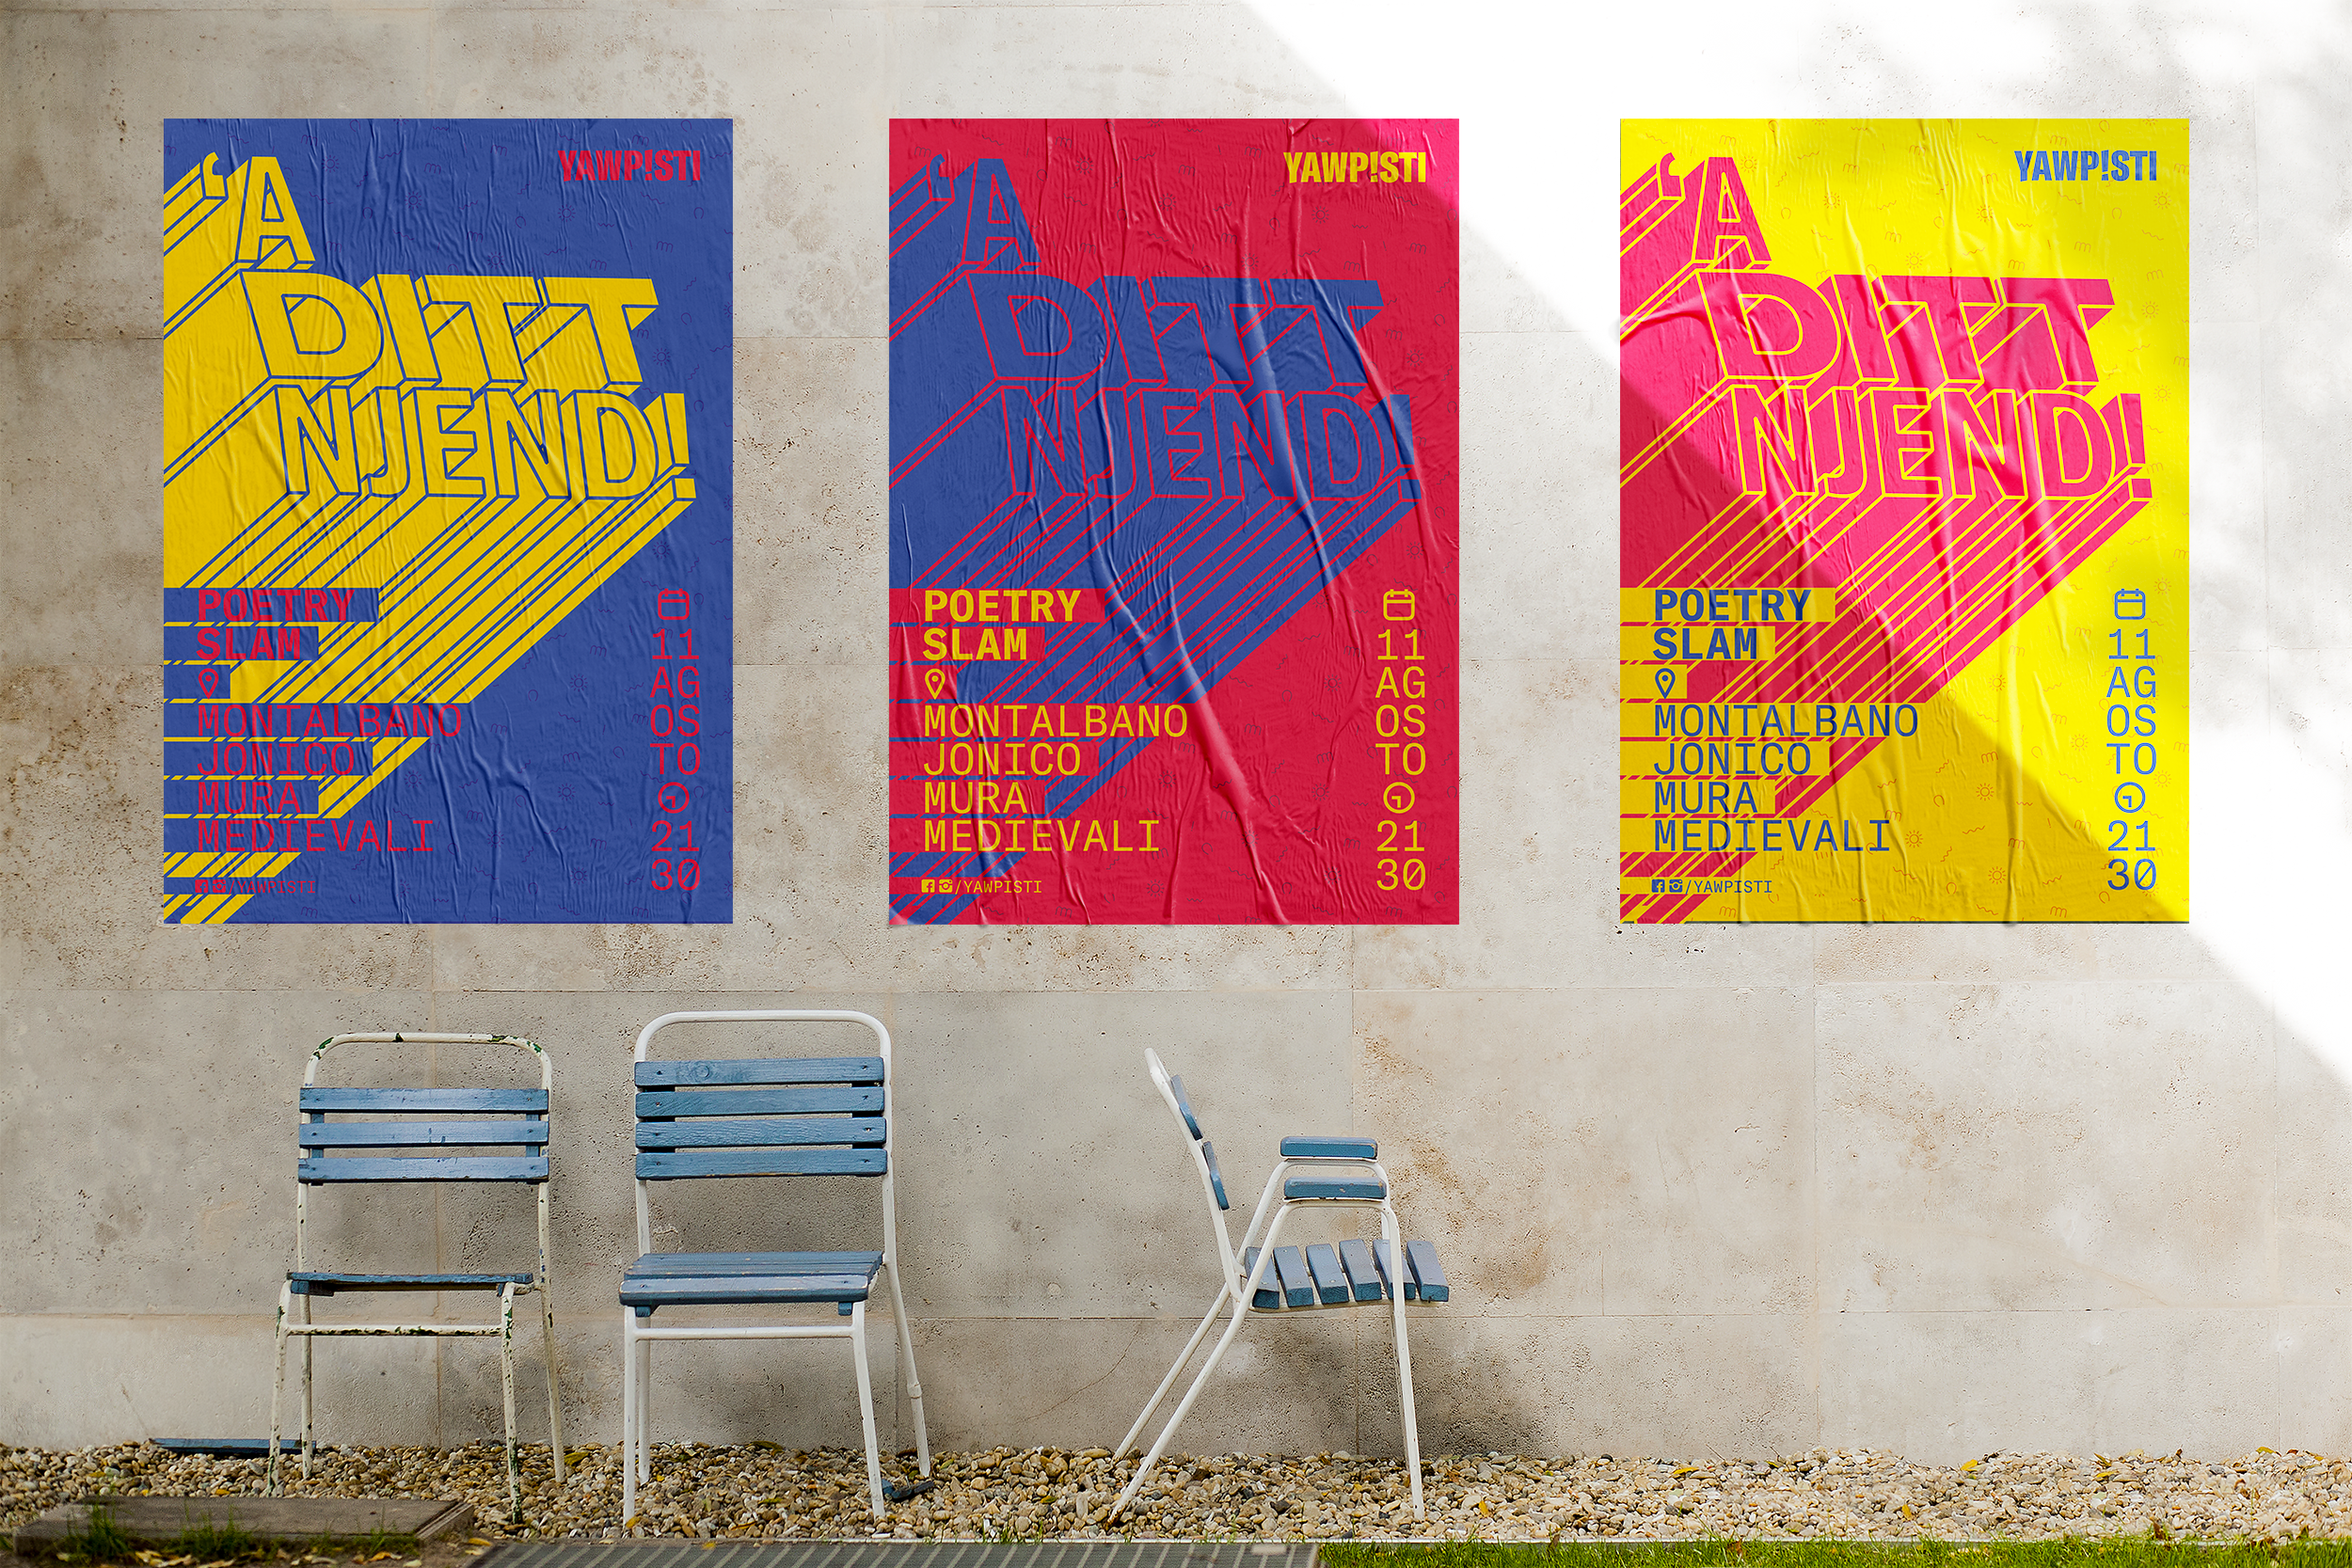 'A Ditt Njend! Poetry Slam posters